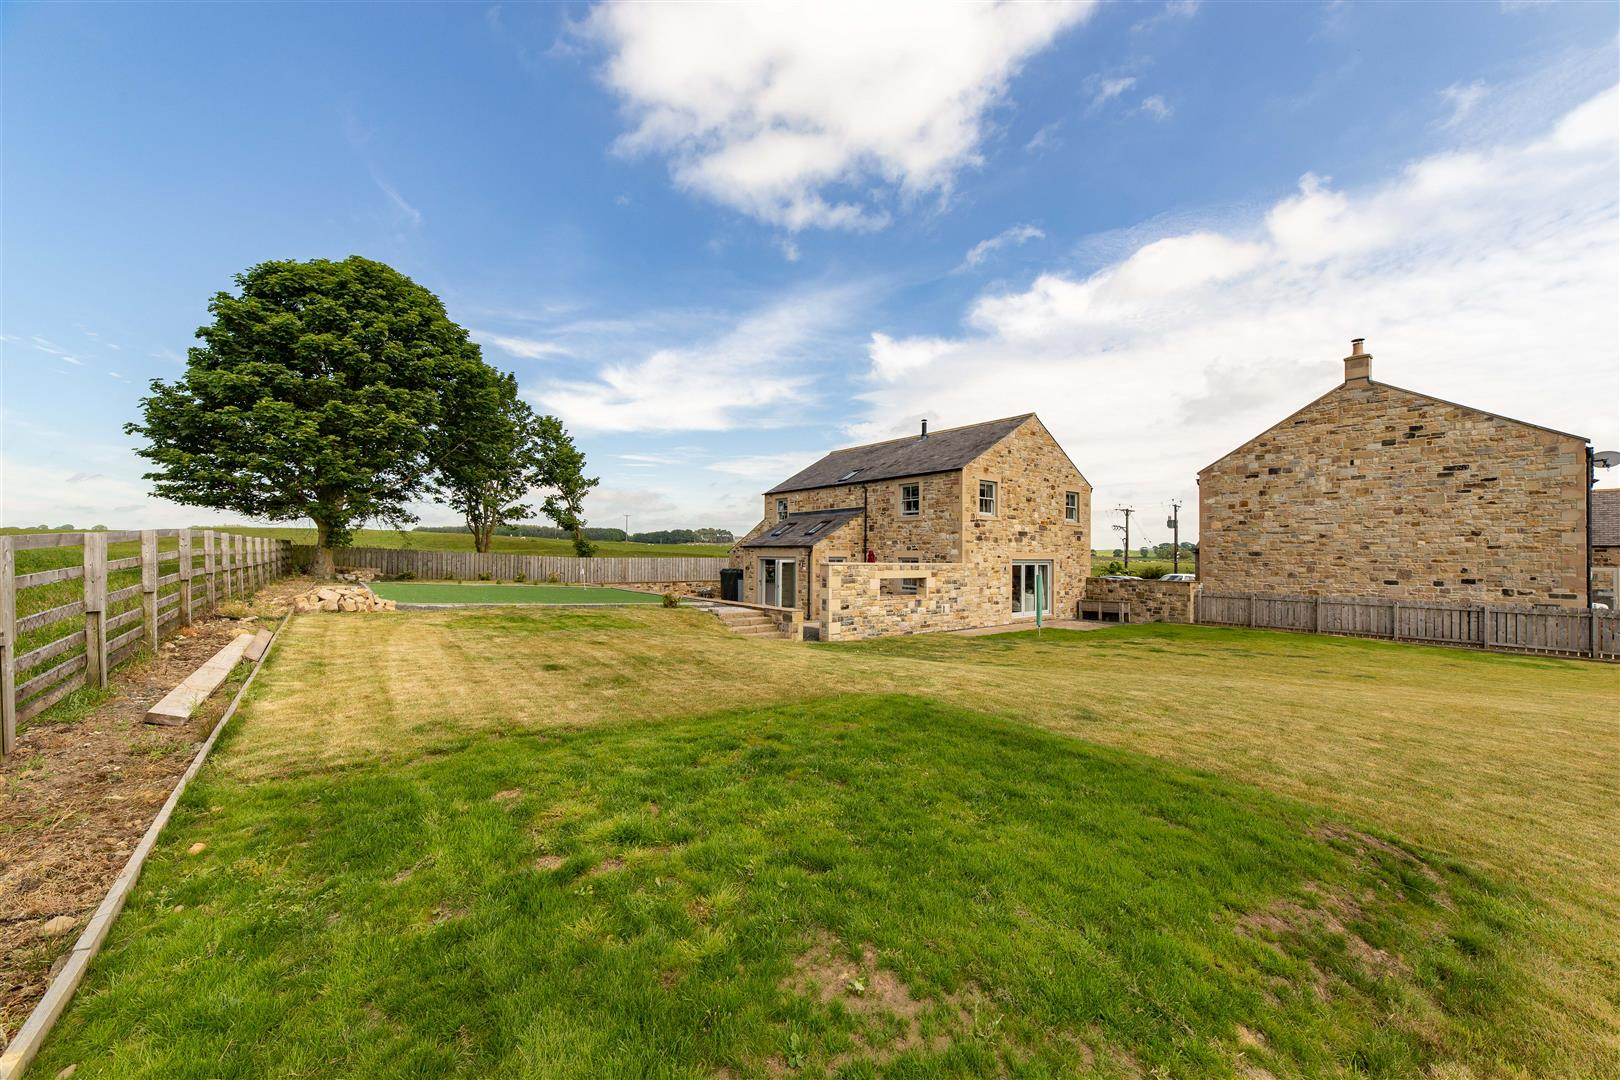 4 bed detached house for sale, Hexham 0